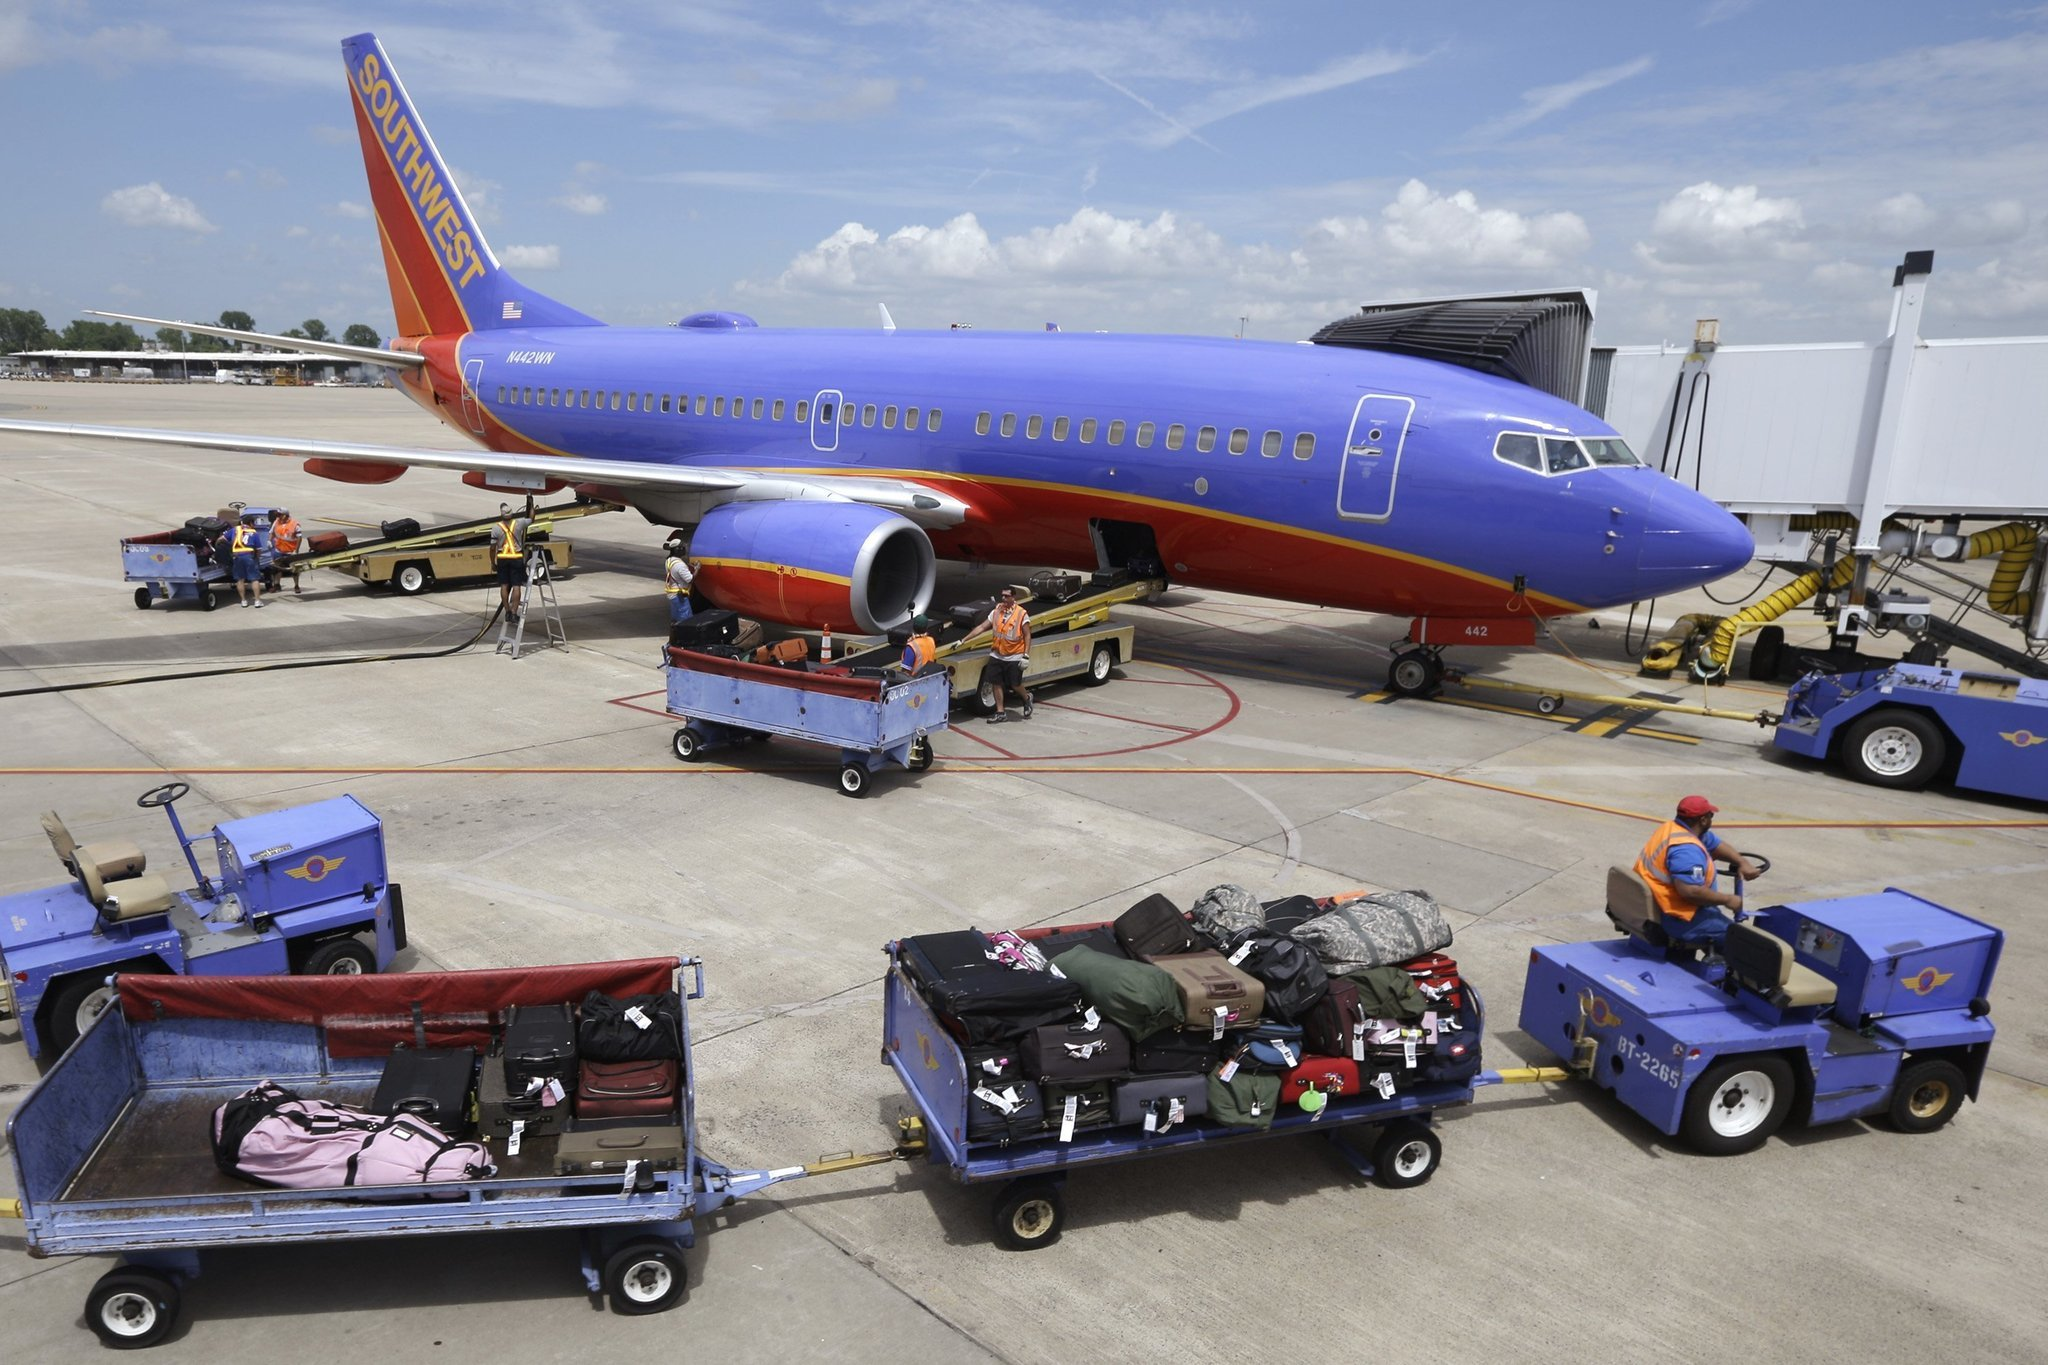 southwest warns fliers to print boarding passes as technical